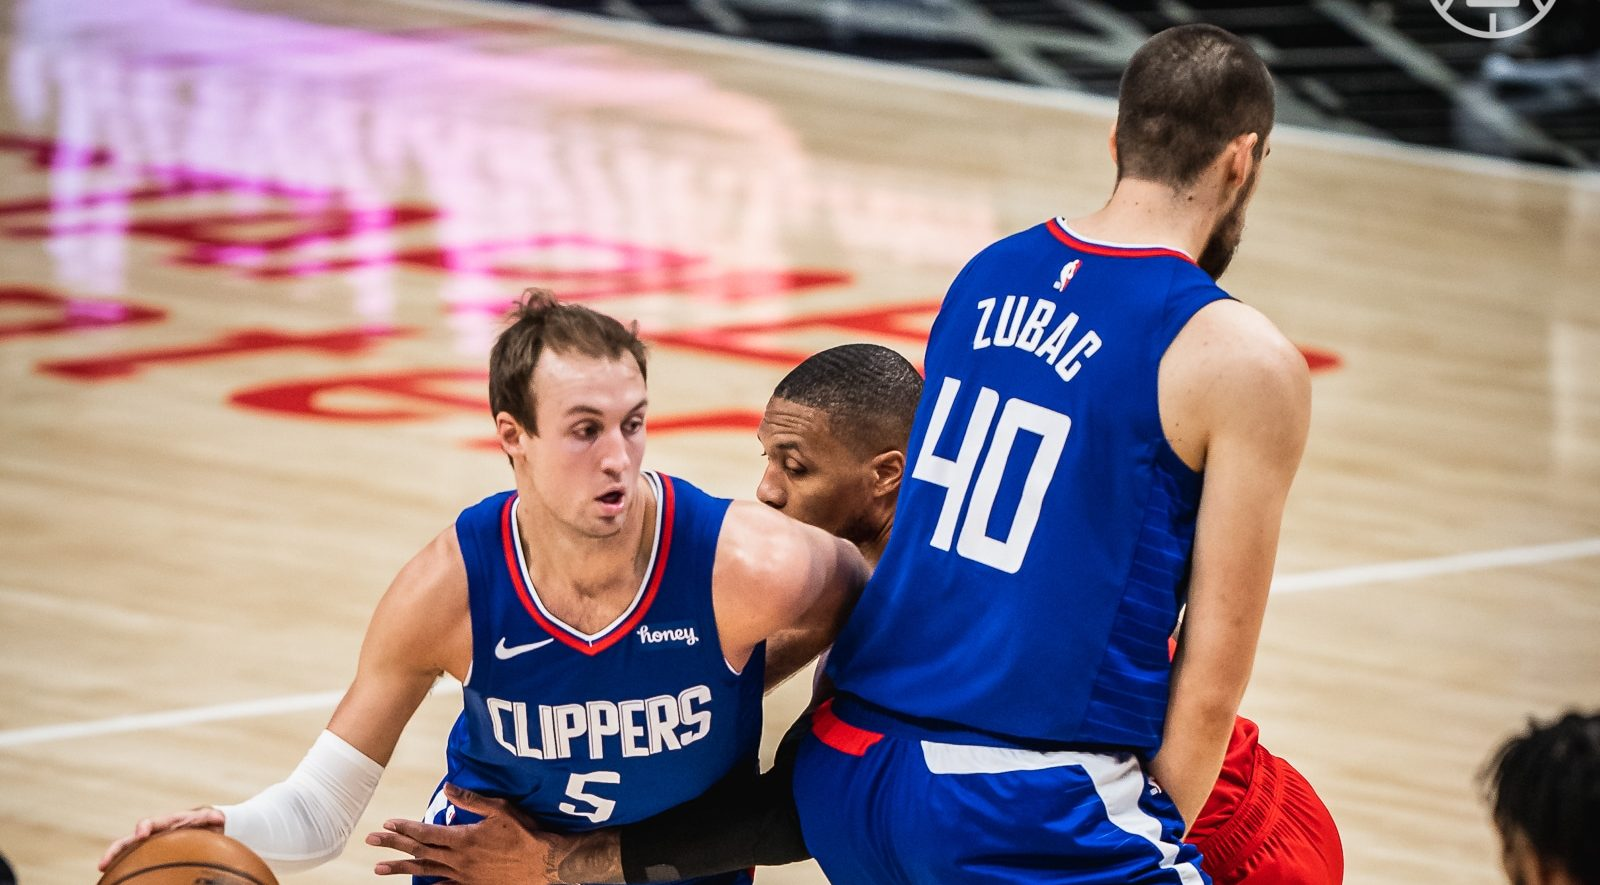 Clippers vs. Jazz Recap: Clips Fall 106-100, Show Heart